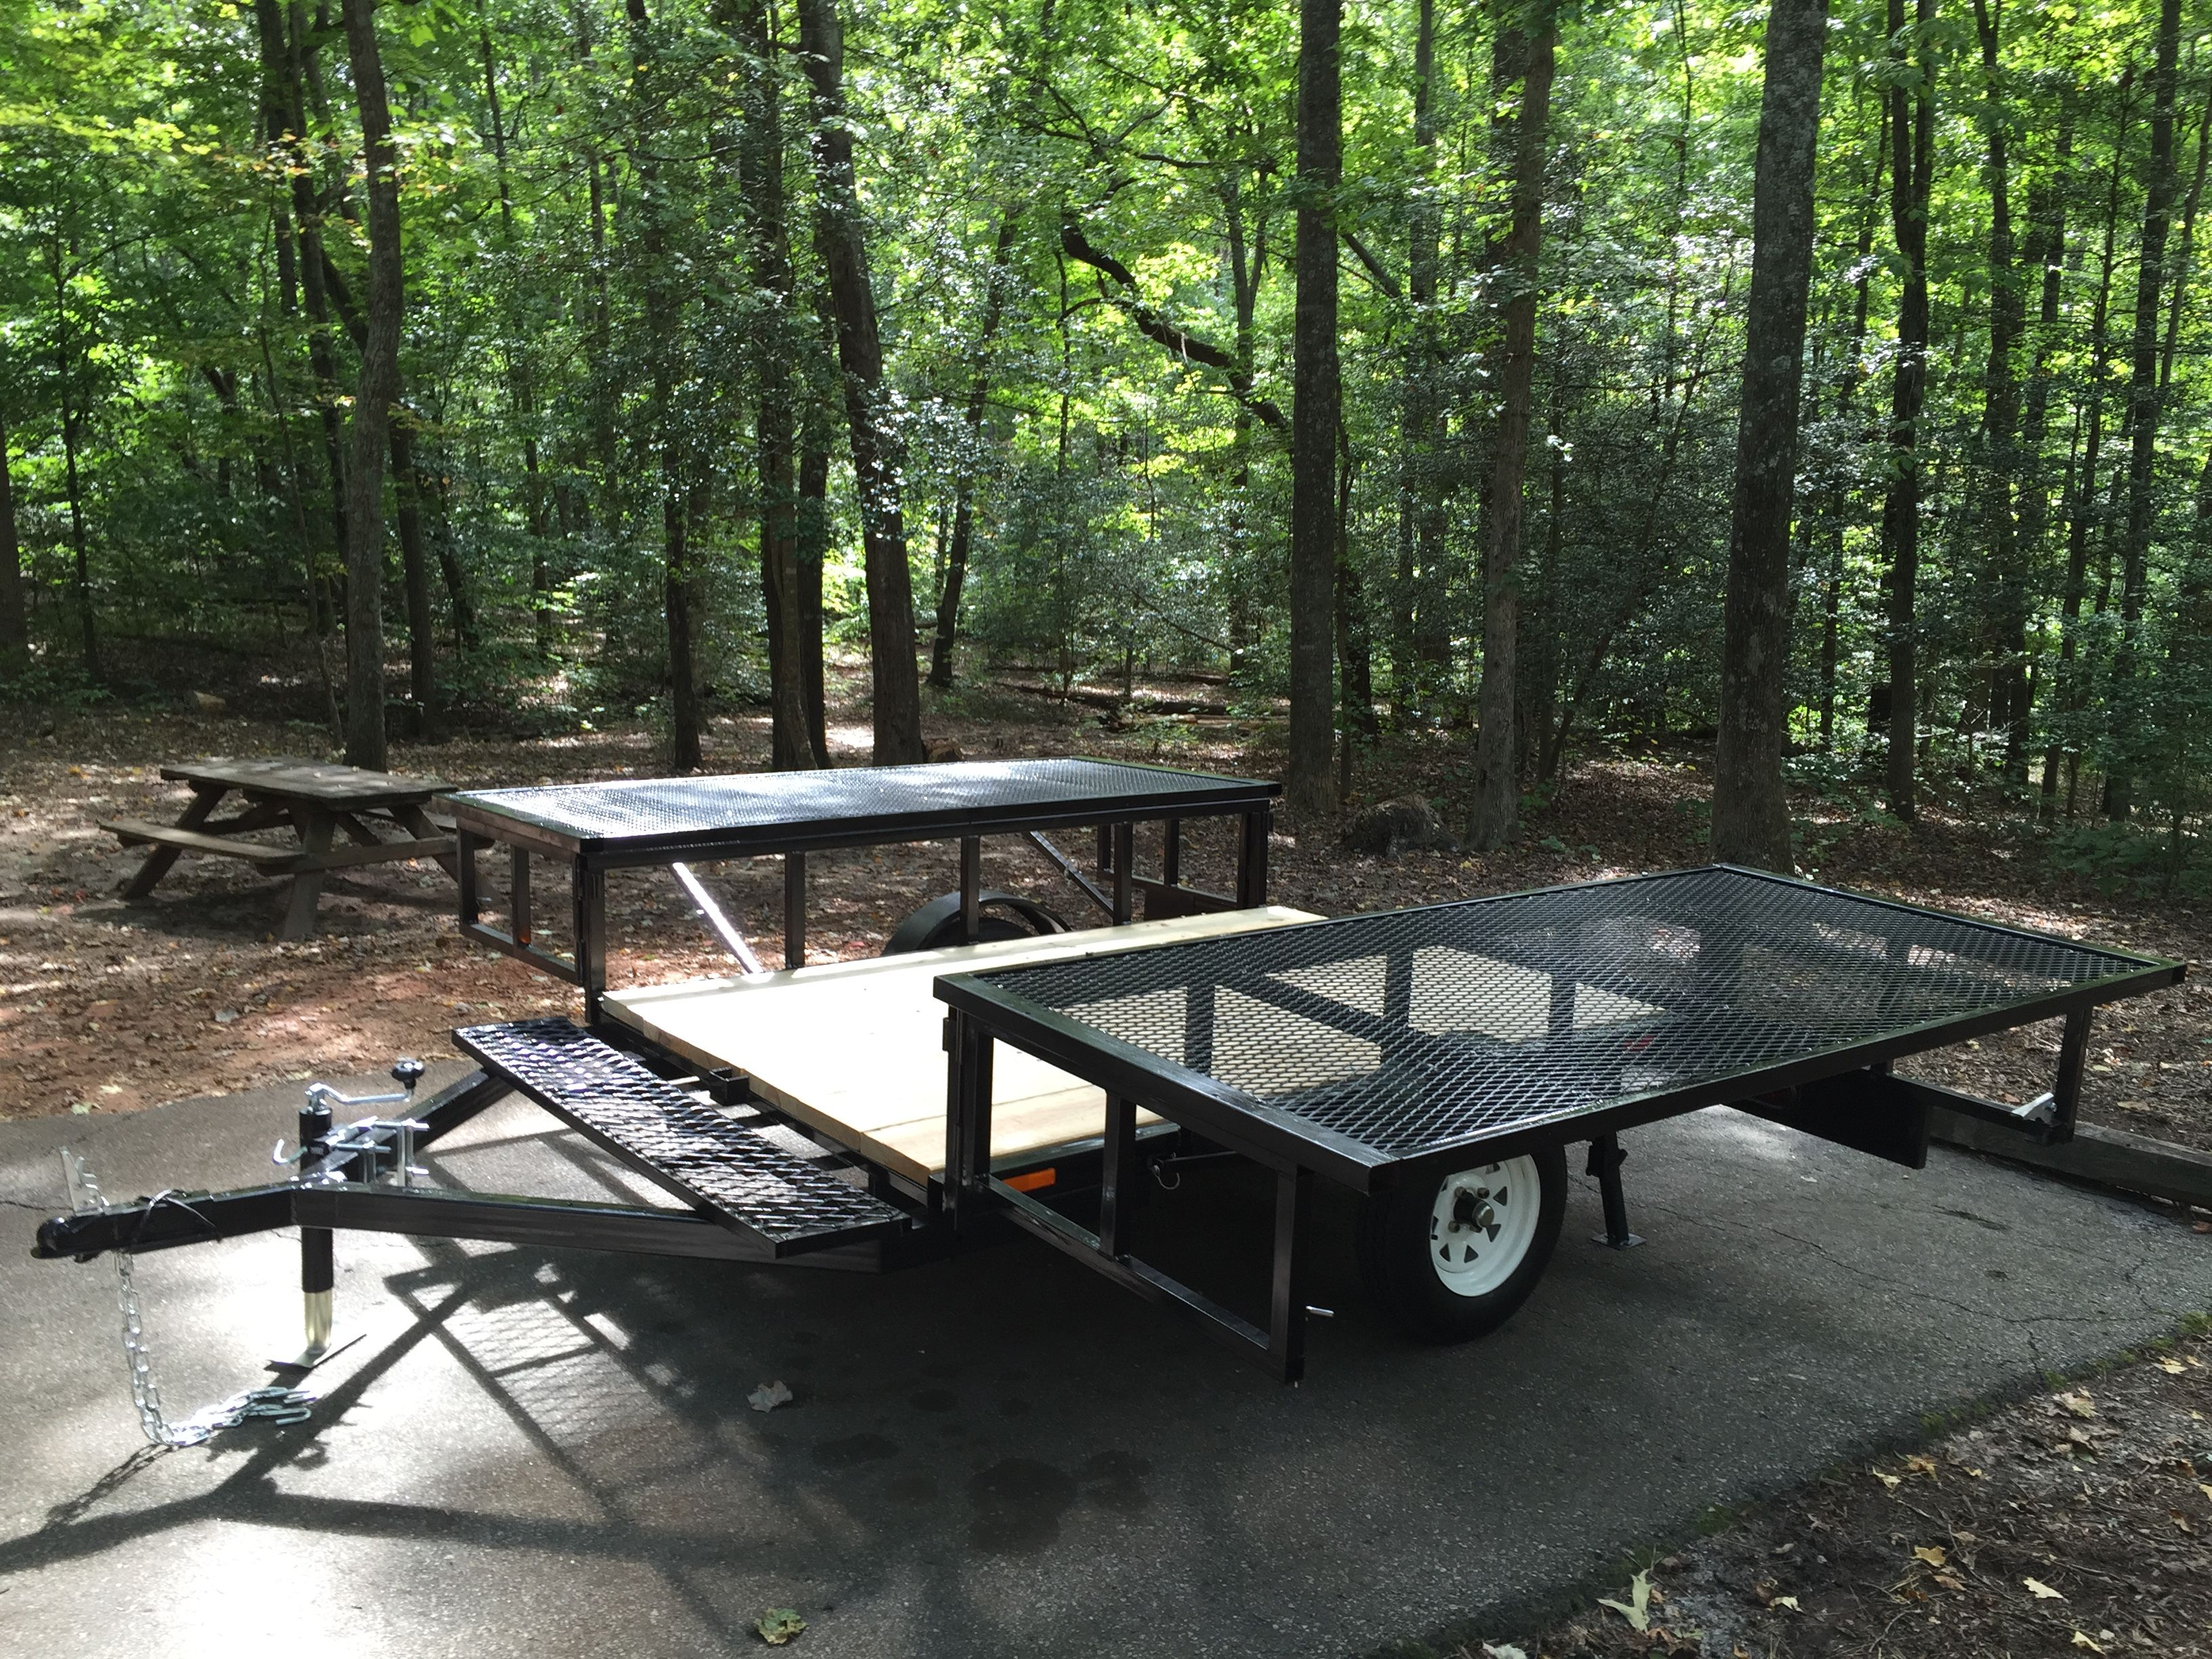 Double Duty Utility Camping Trailer Camping Table